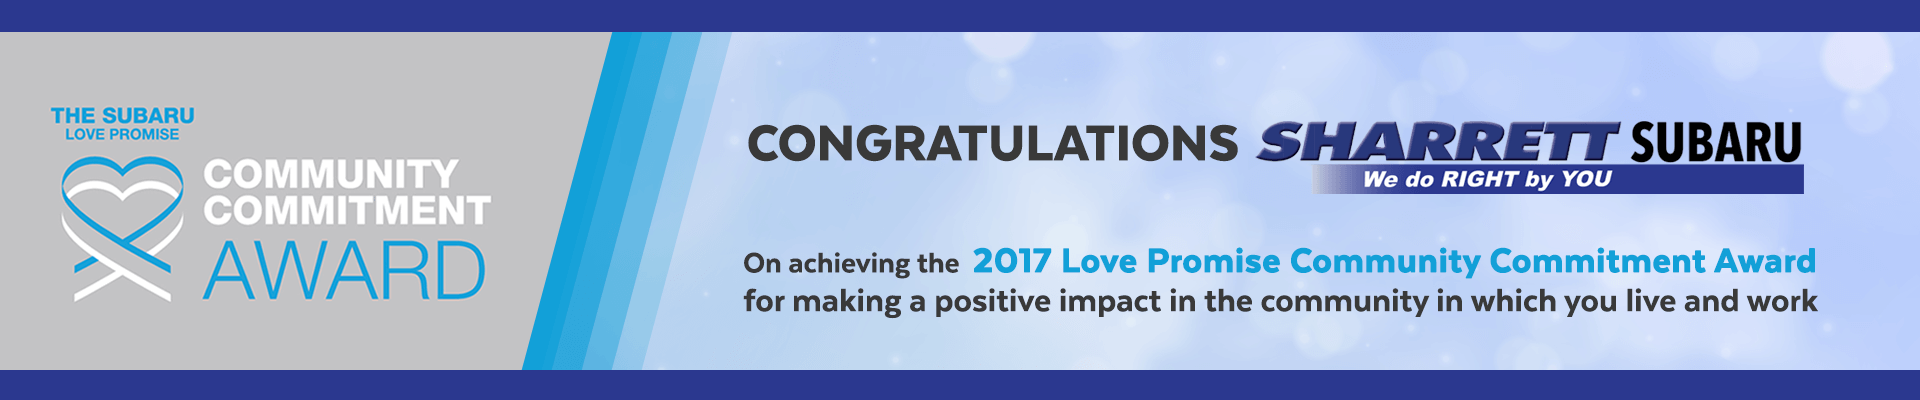 Subaru 2017 Love Promise Community Commitment Award